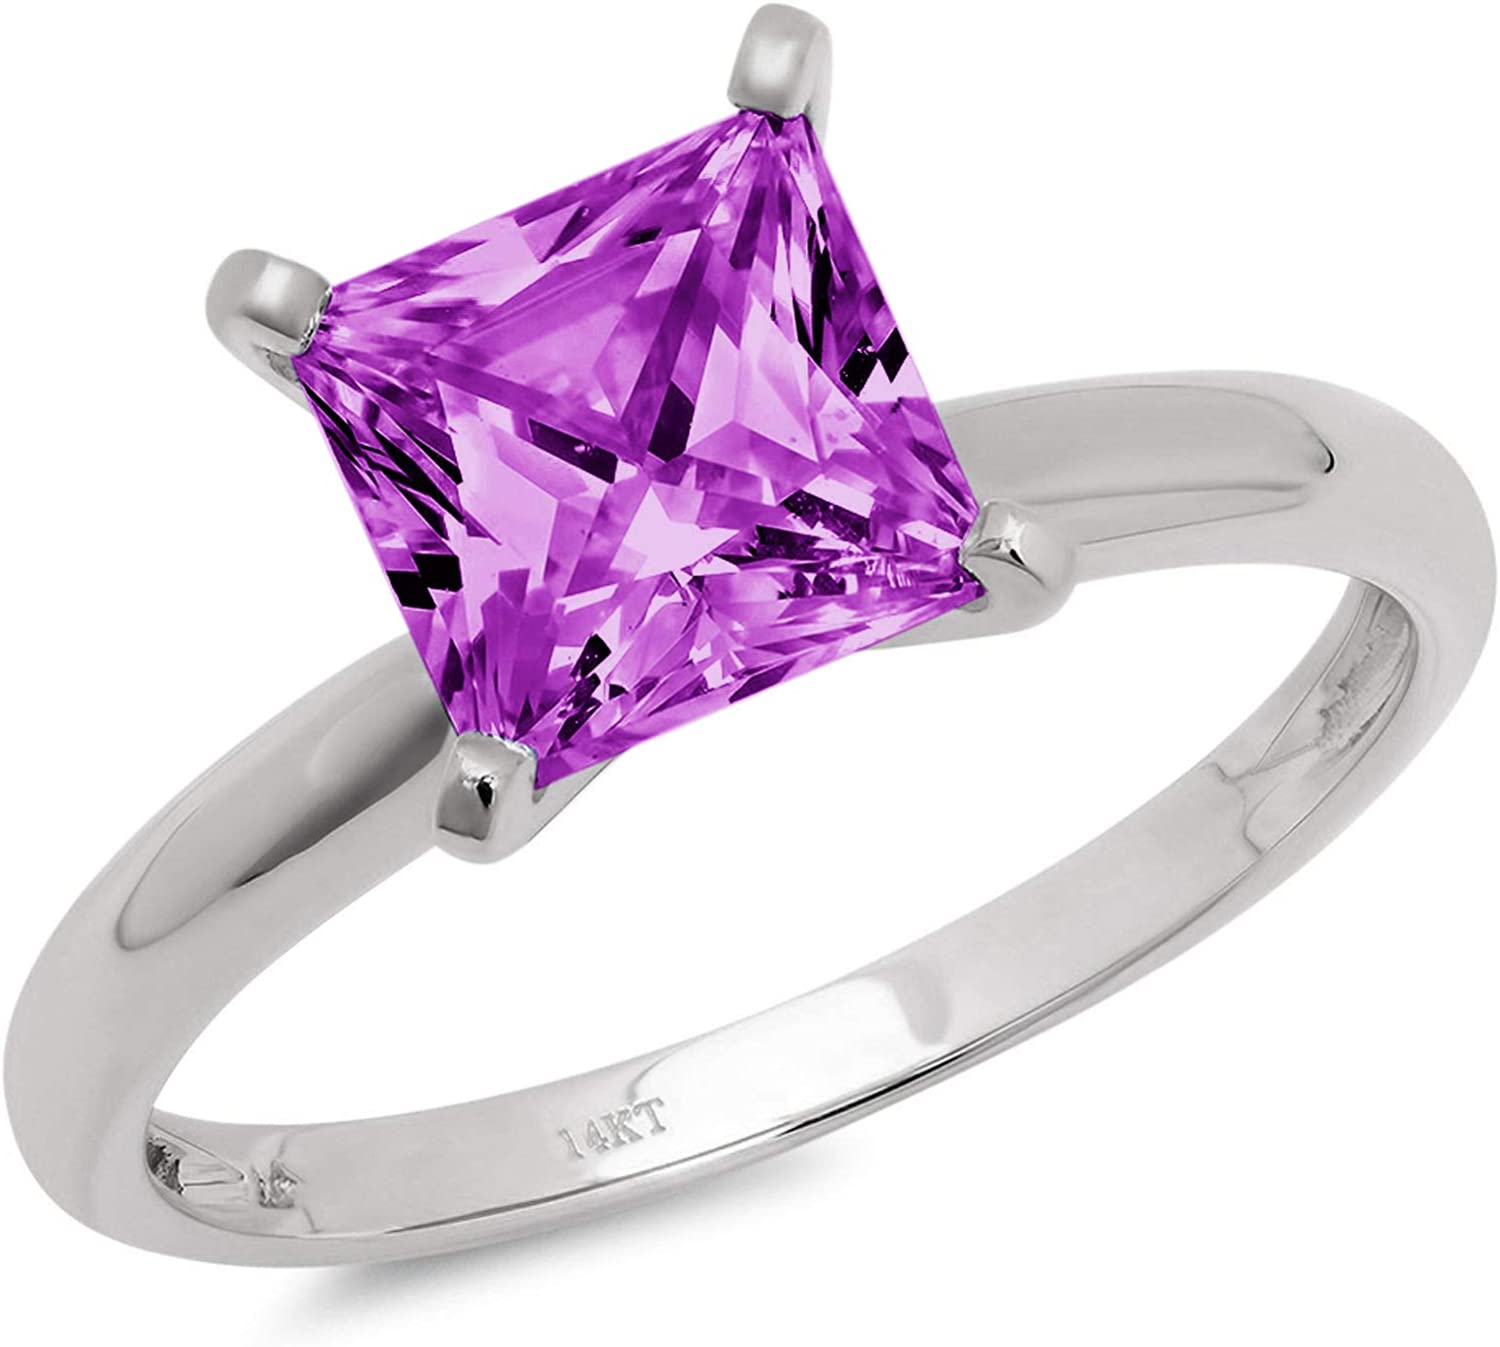 2.95 ct Brilliant Princess Cut Solitaire Flawless Simulated CZ Purple Alexandrite Ideal VVS1 4-Prong Engagement Wedding Bridal Promise Anniversary Designer Ring Solid 14k White Gold for Women